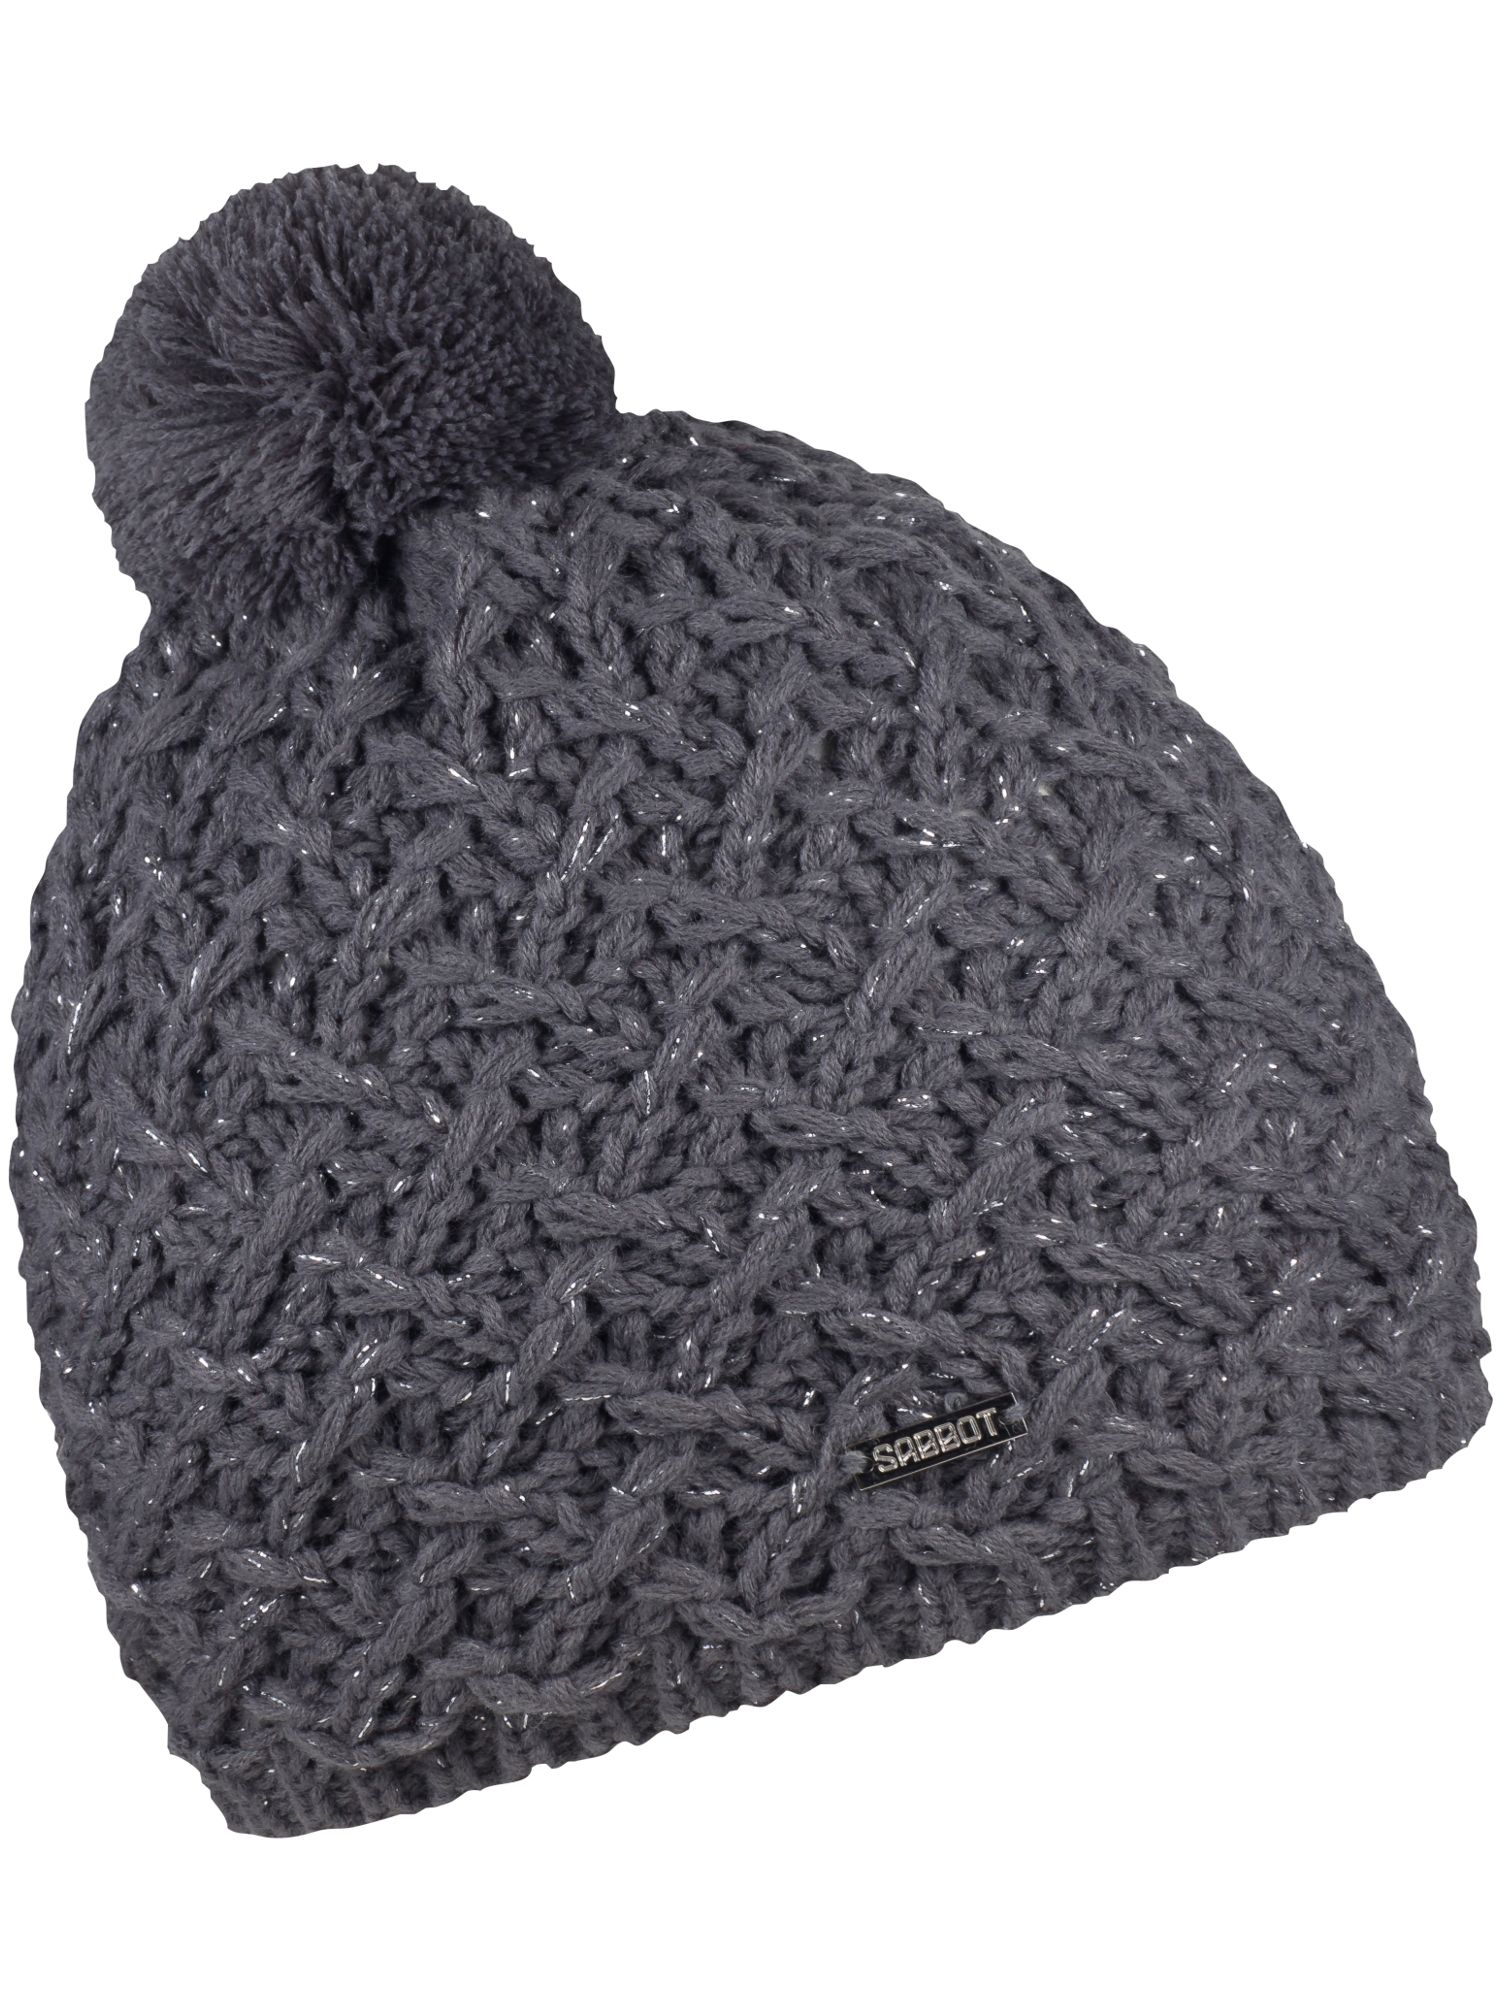 Sabbot Cable Knit Beanie Grey